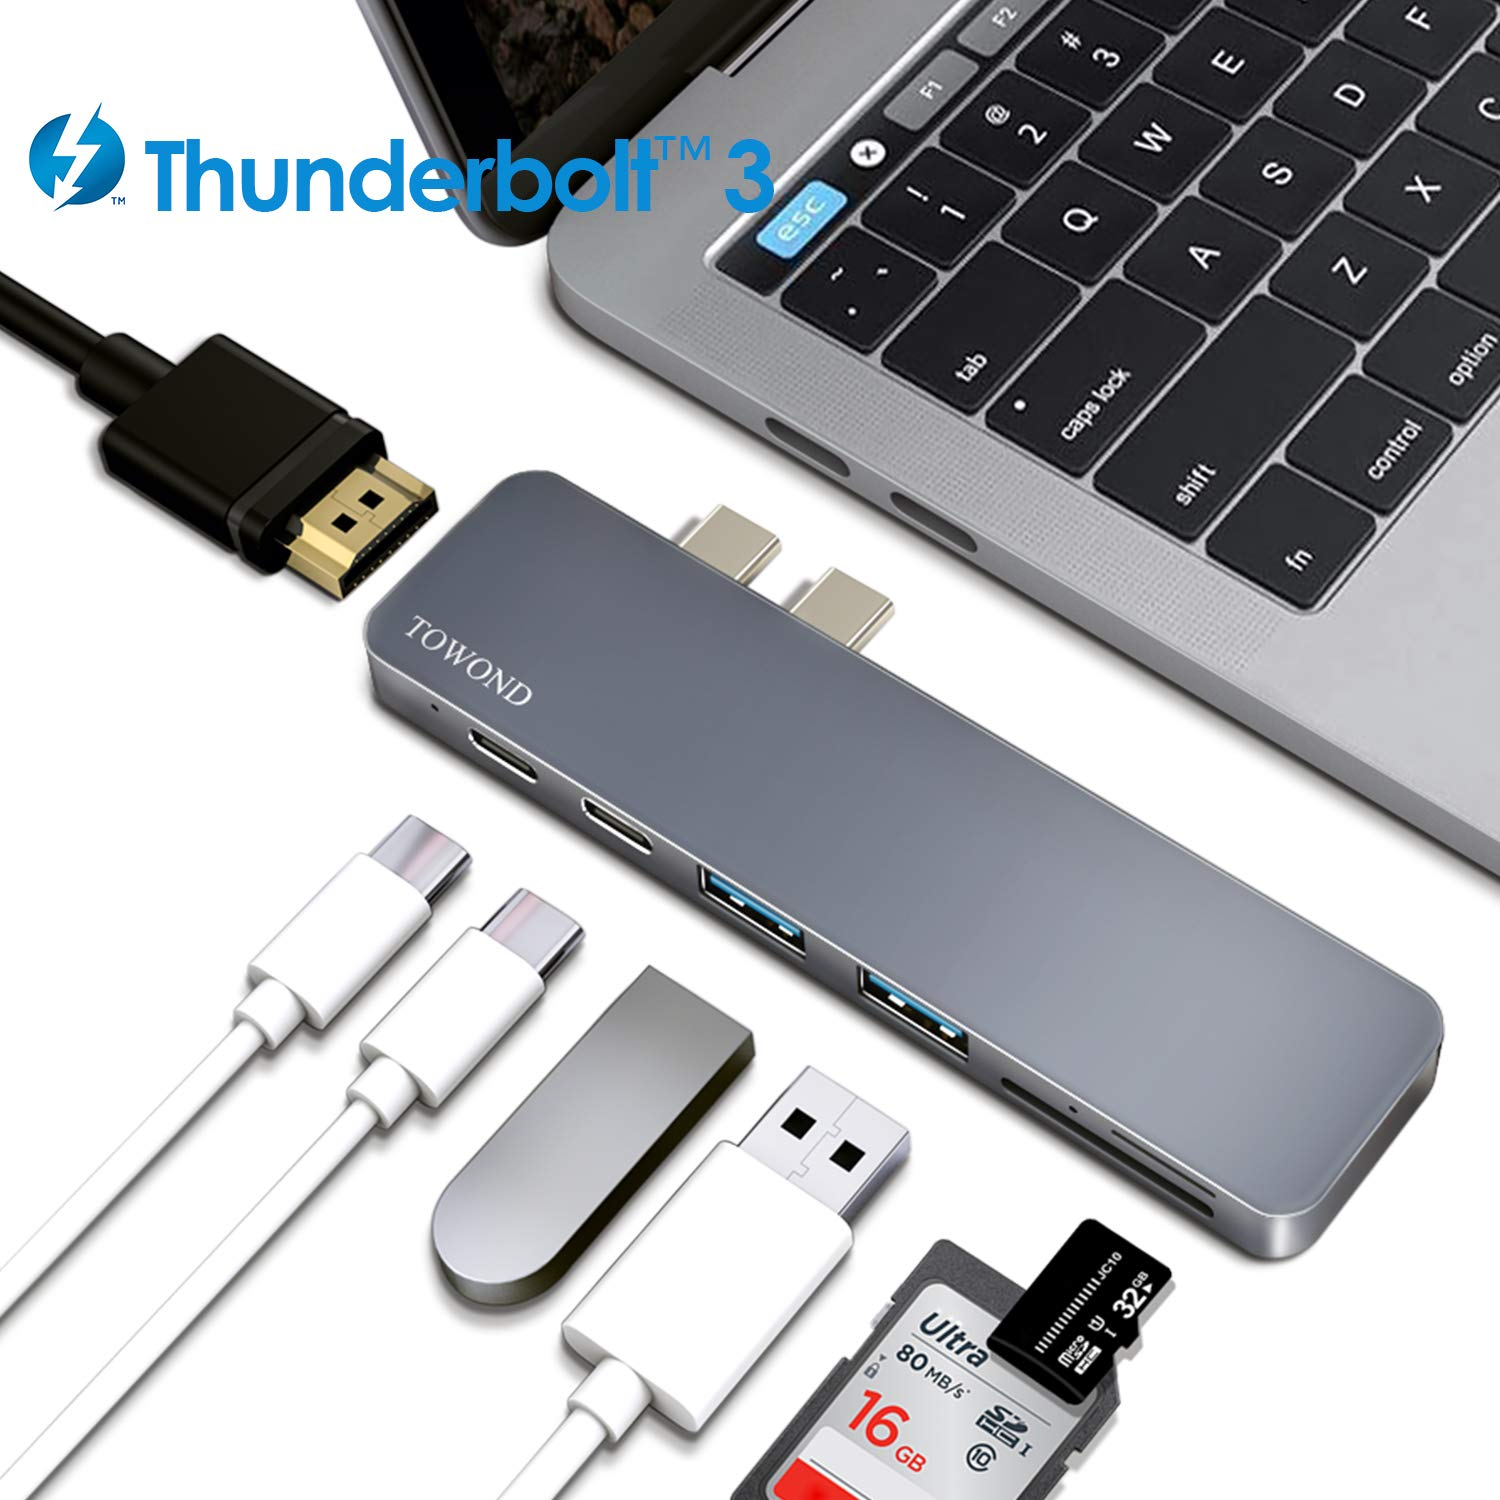 USB-C Hub, TOWOND 7-in-1 USB-C Adapter Dongle for MacBook Air 2019/2018, MacBook Pro 2019/2018/2017/2016,Type-C Hub with 4K HDMI, 40Gbps Thunderbolt 3 USB C Power Delivery,2 USB 3.0,SD/TF Card Reader